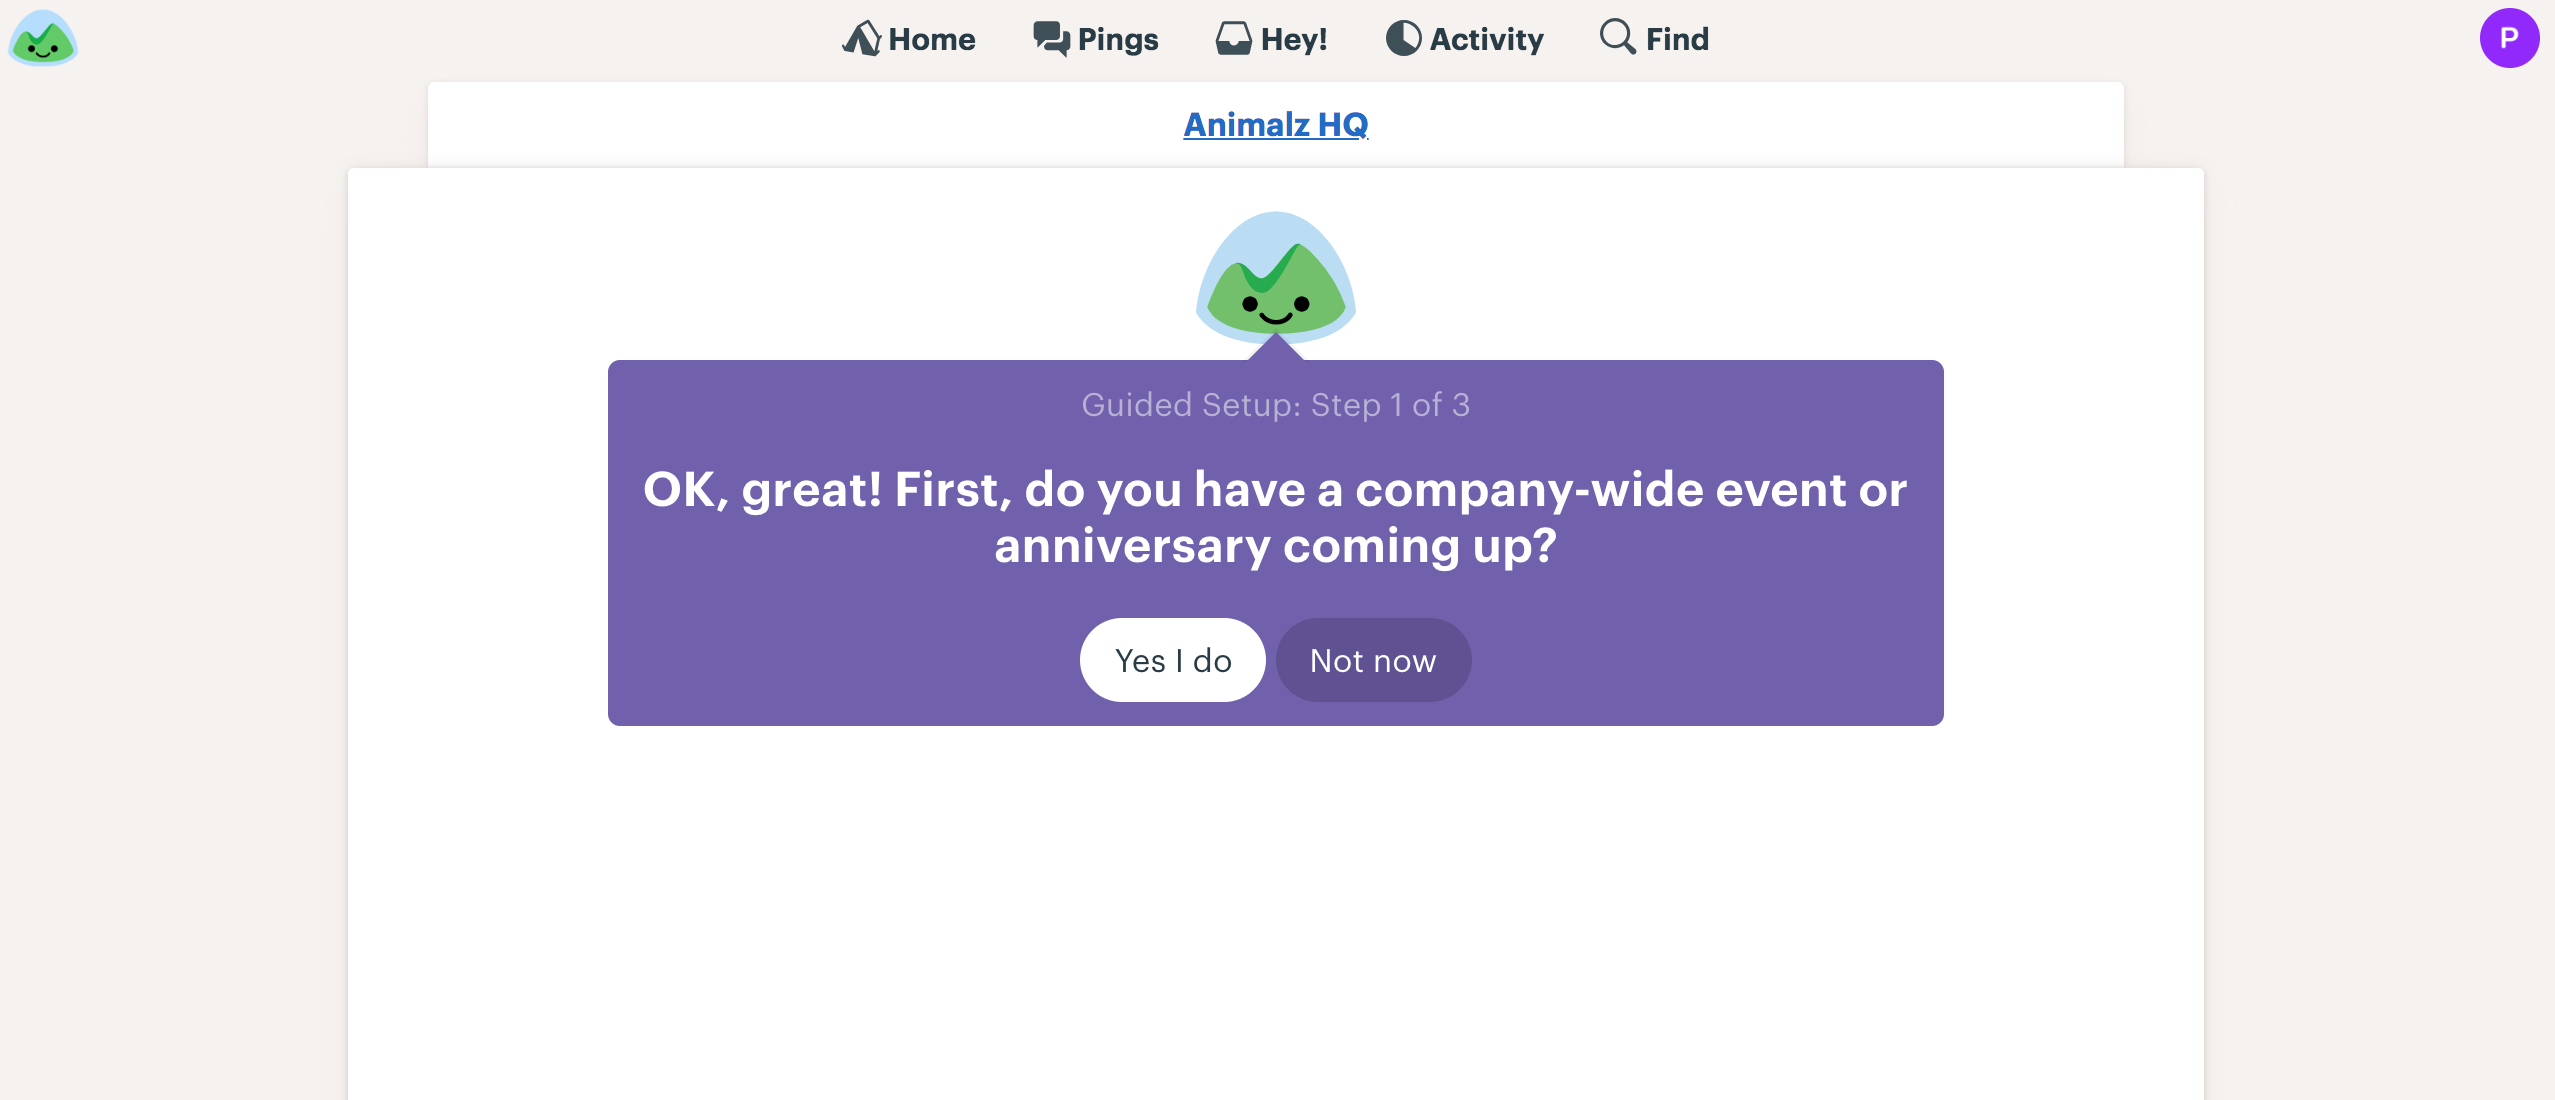 basecamp uses in-app messaging to welcome users and make user onboarding more enjoyable.